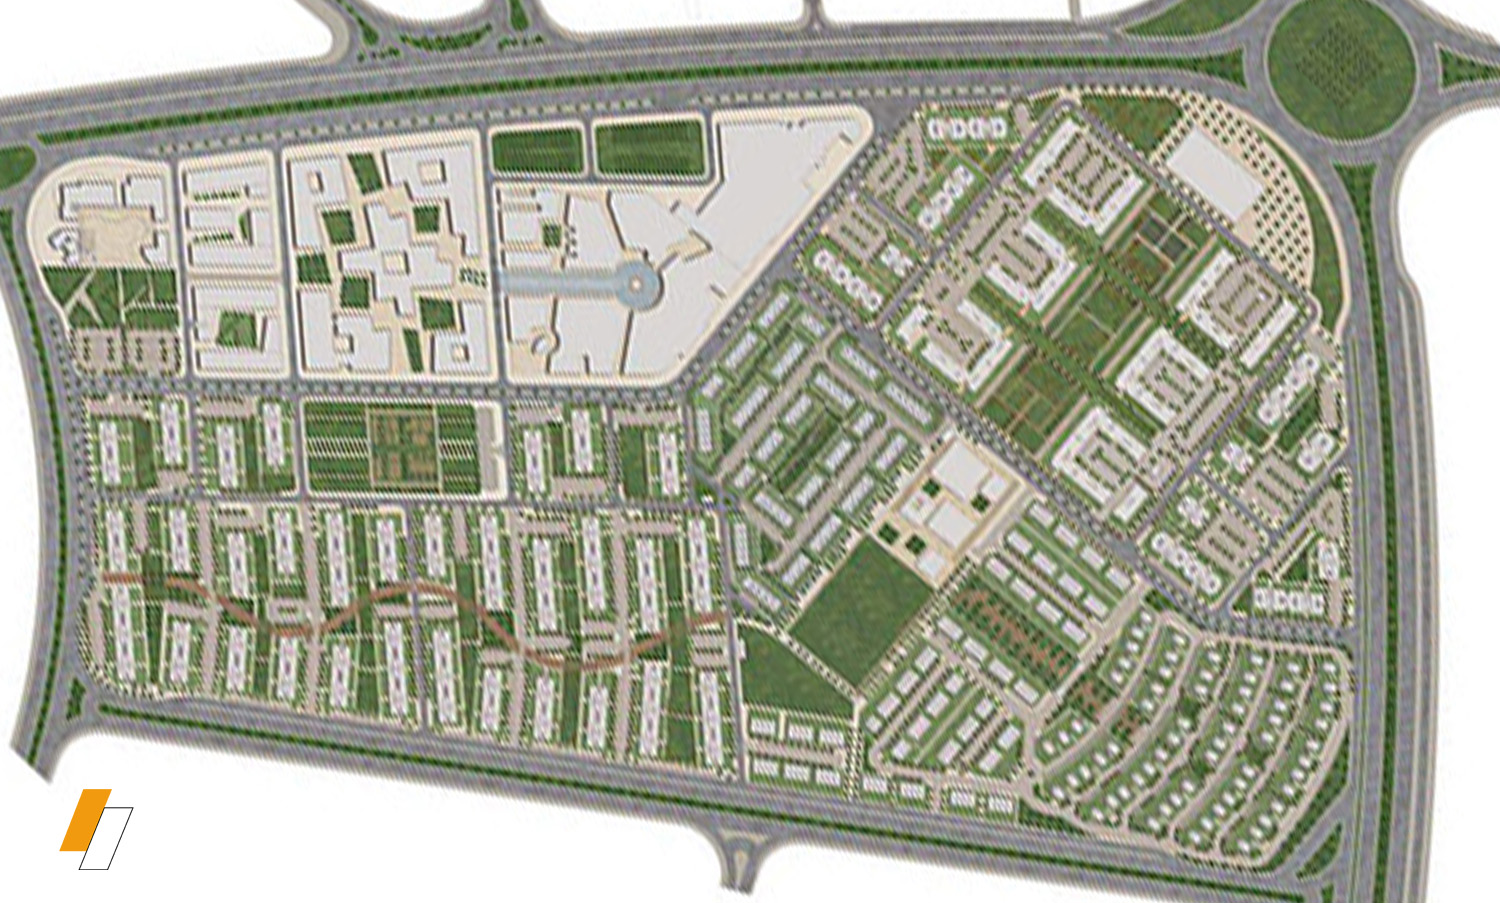 October Plaza - Master plan image - Flash property                                                style=